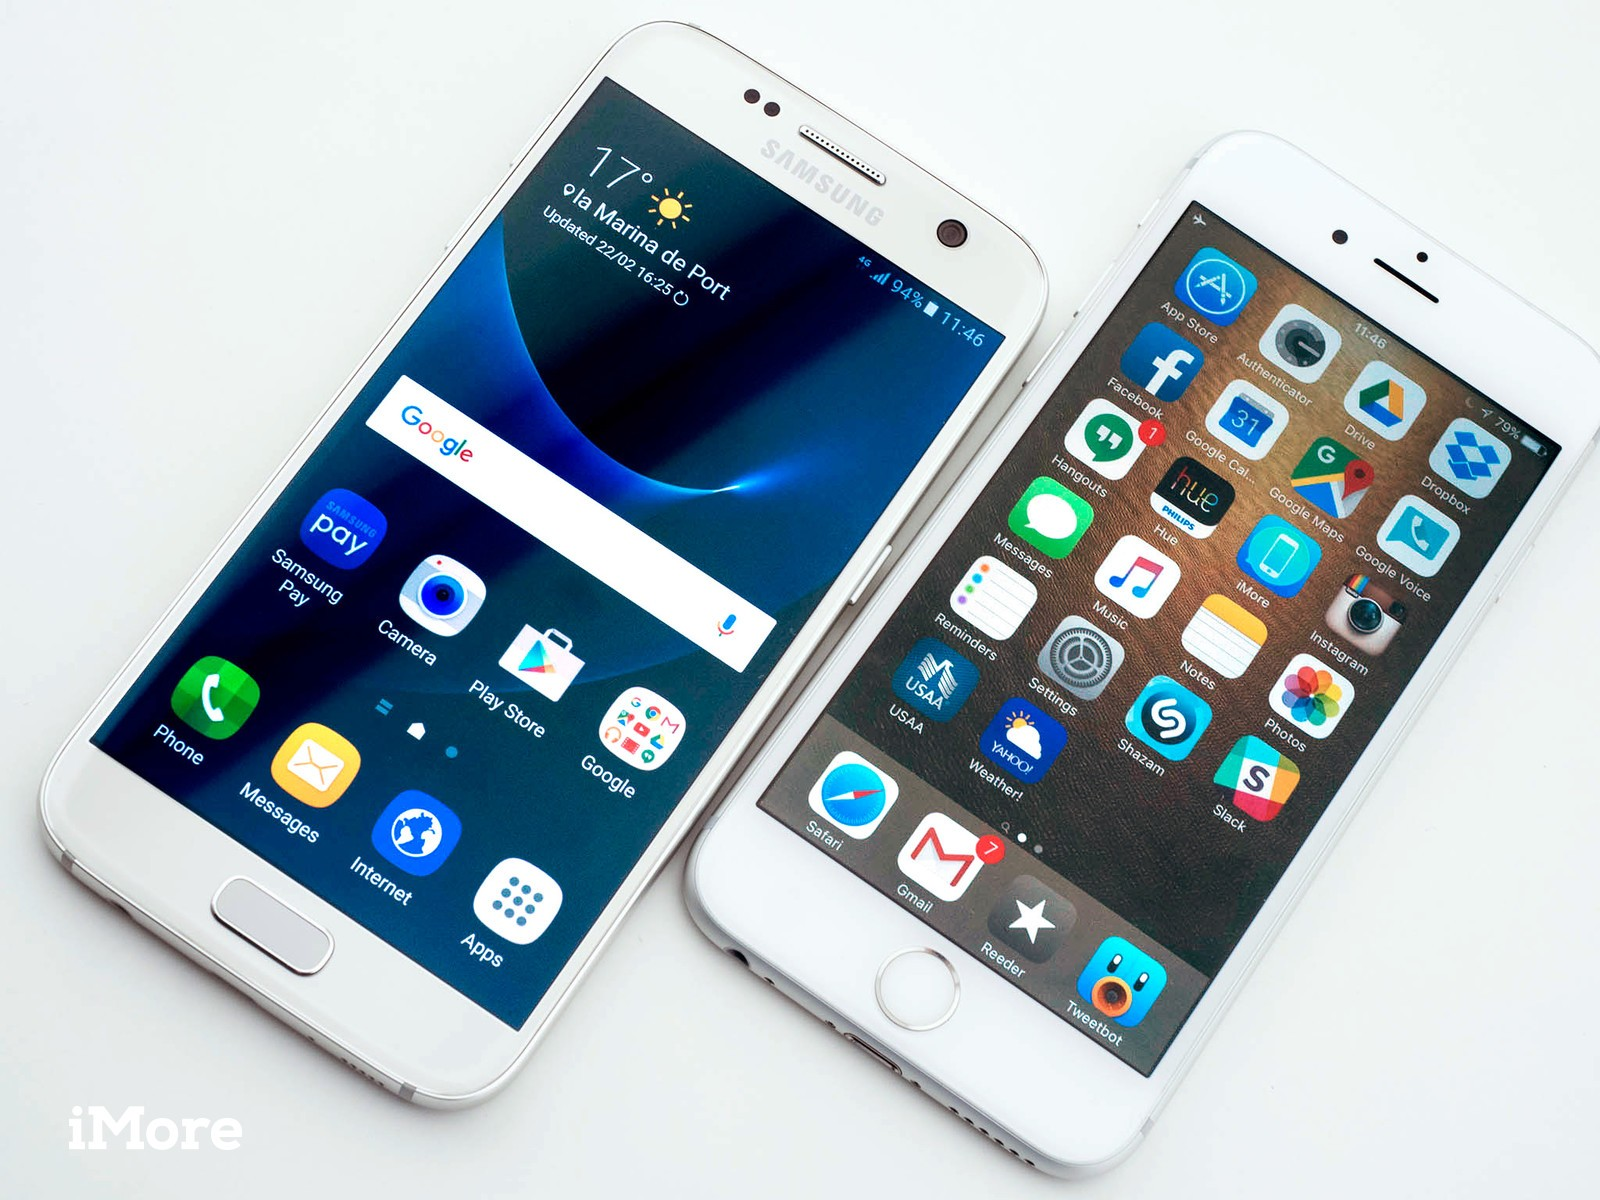 Galaxy S7 and iPhone 6s